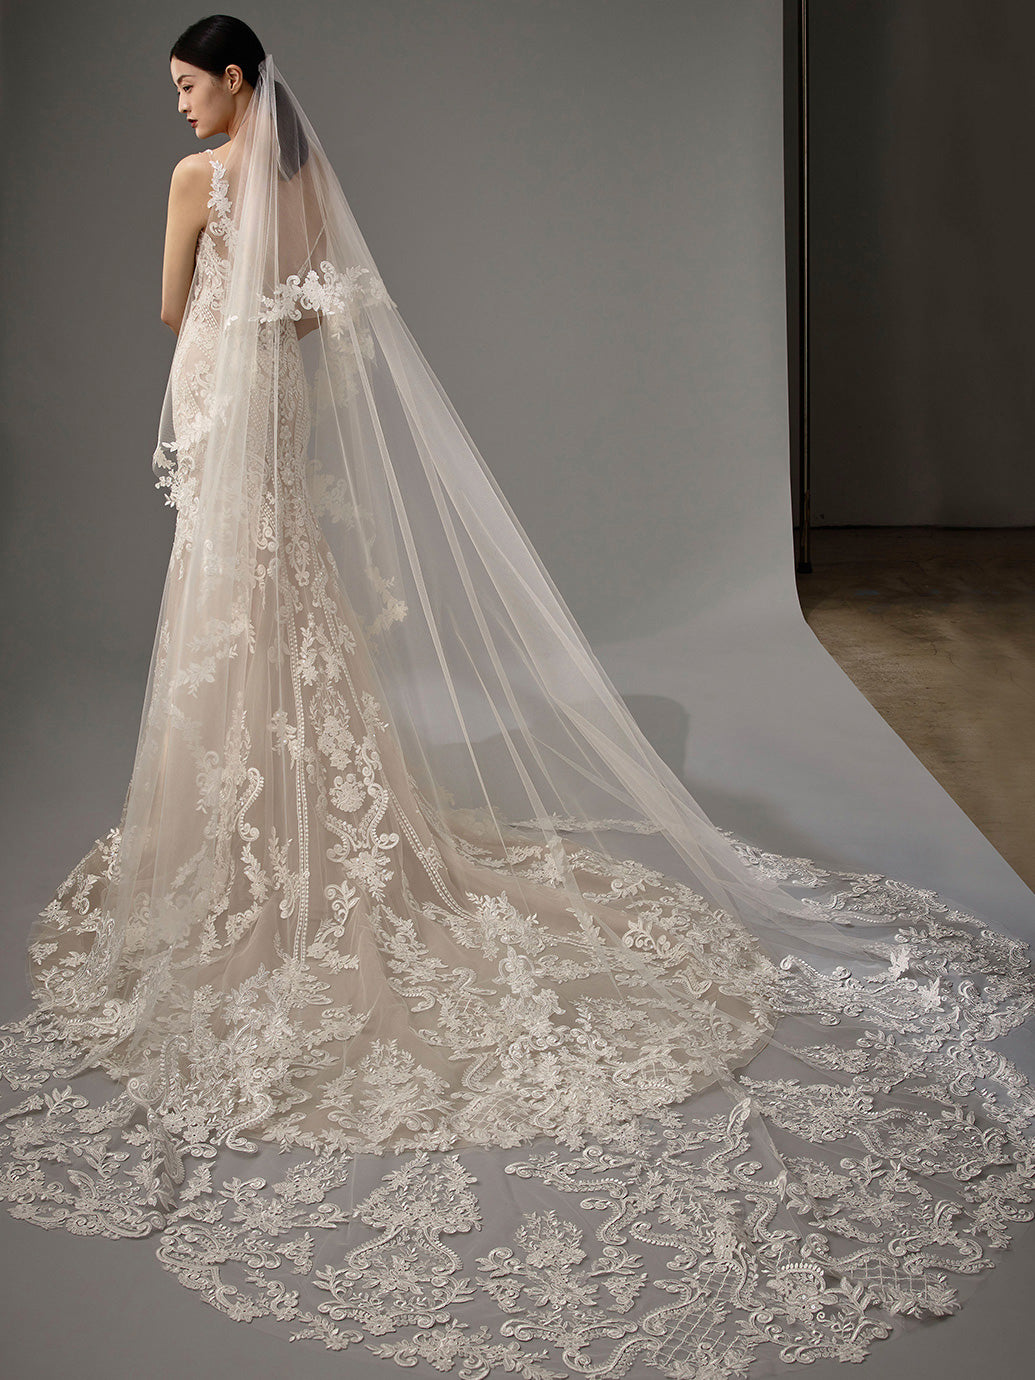 Marianna - New, Gown, Blue by Enzoani - Eternal Bridal